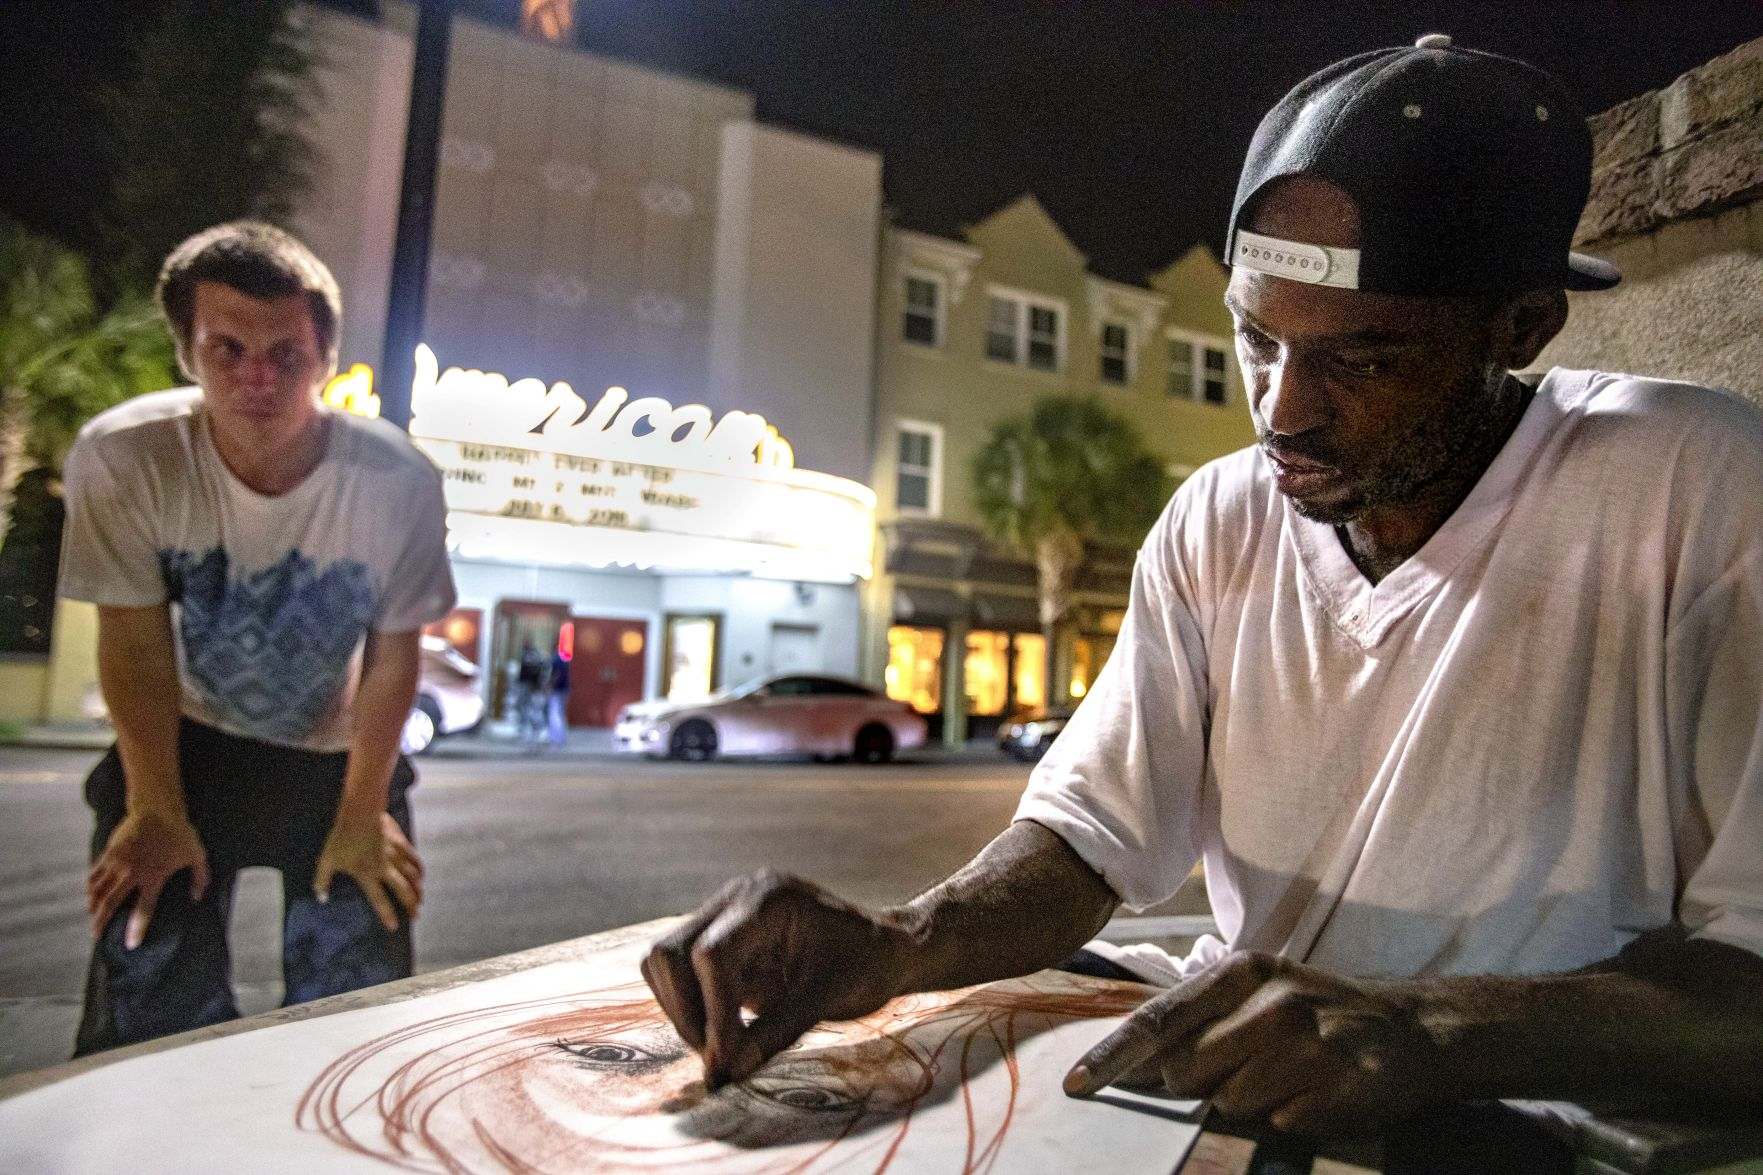 Formerly homeless artist provides for his family selling portraits in Charleston | Post and Courier